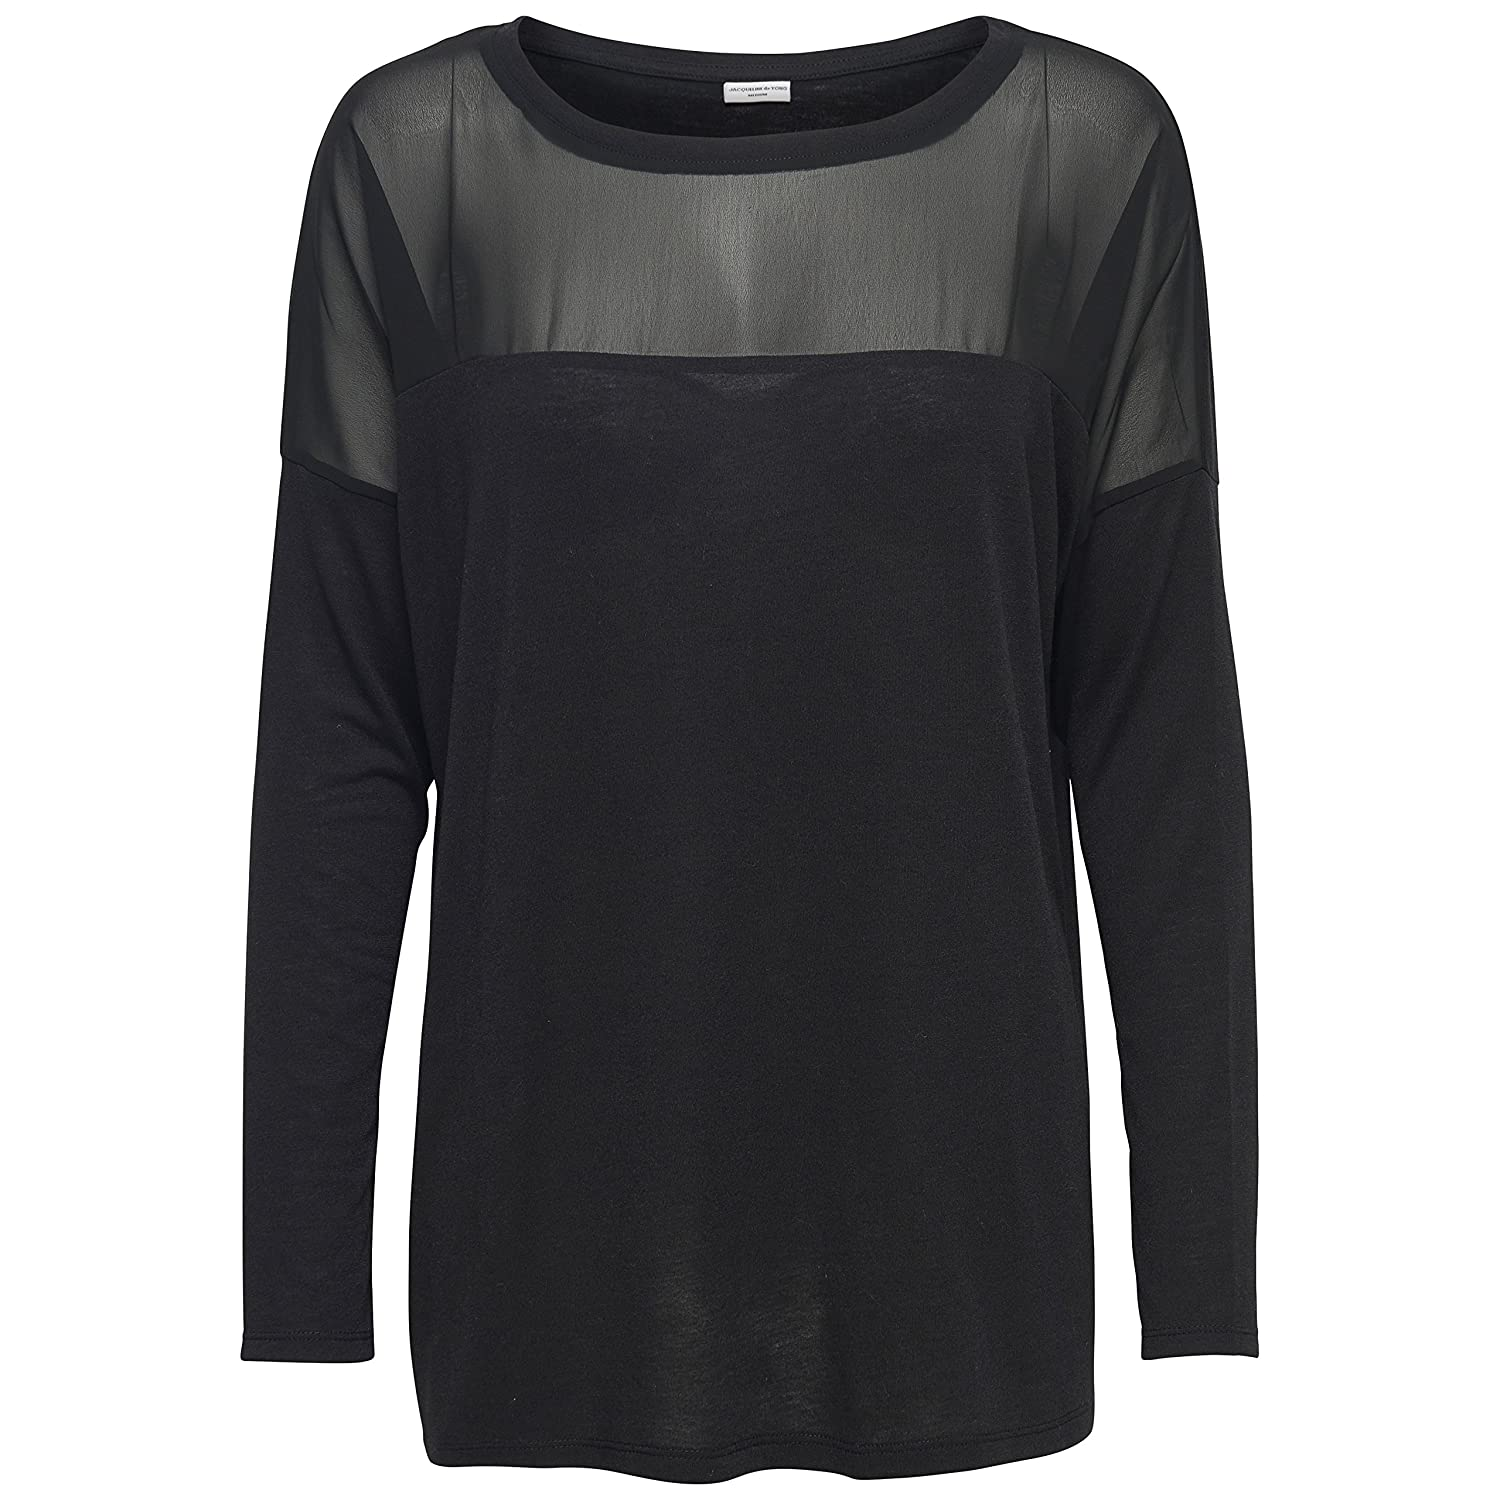 JDY simple Jacqueline de Yong, negro, XL